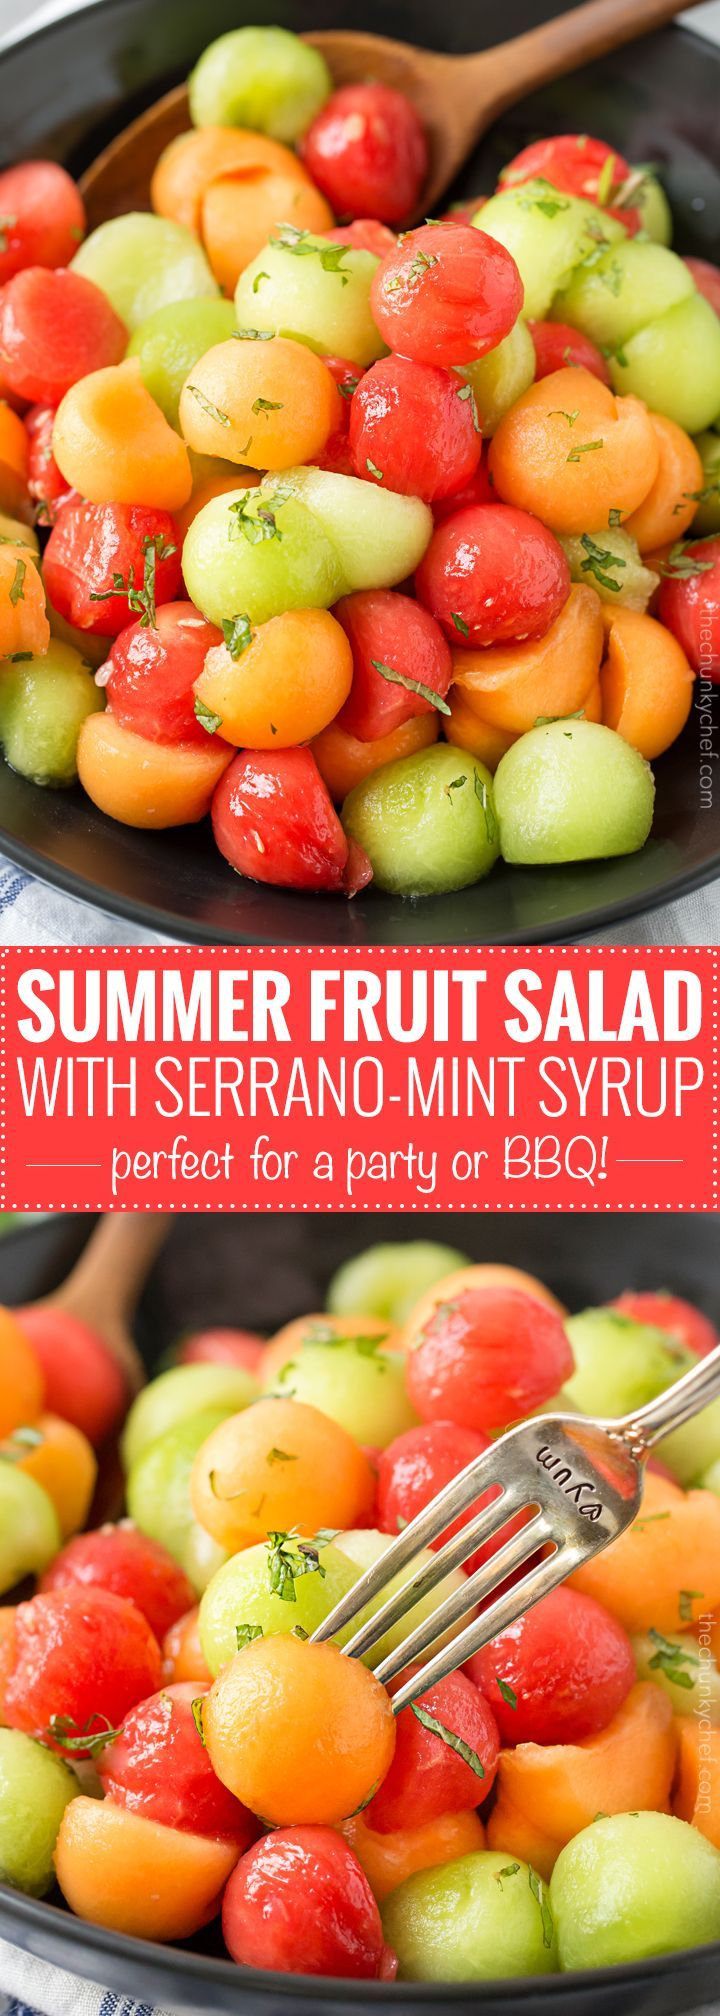 Summer Fruit Salad with Serrano Mint Syrup #melonrecipes